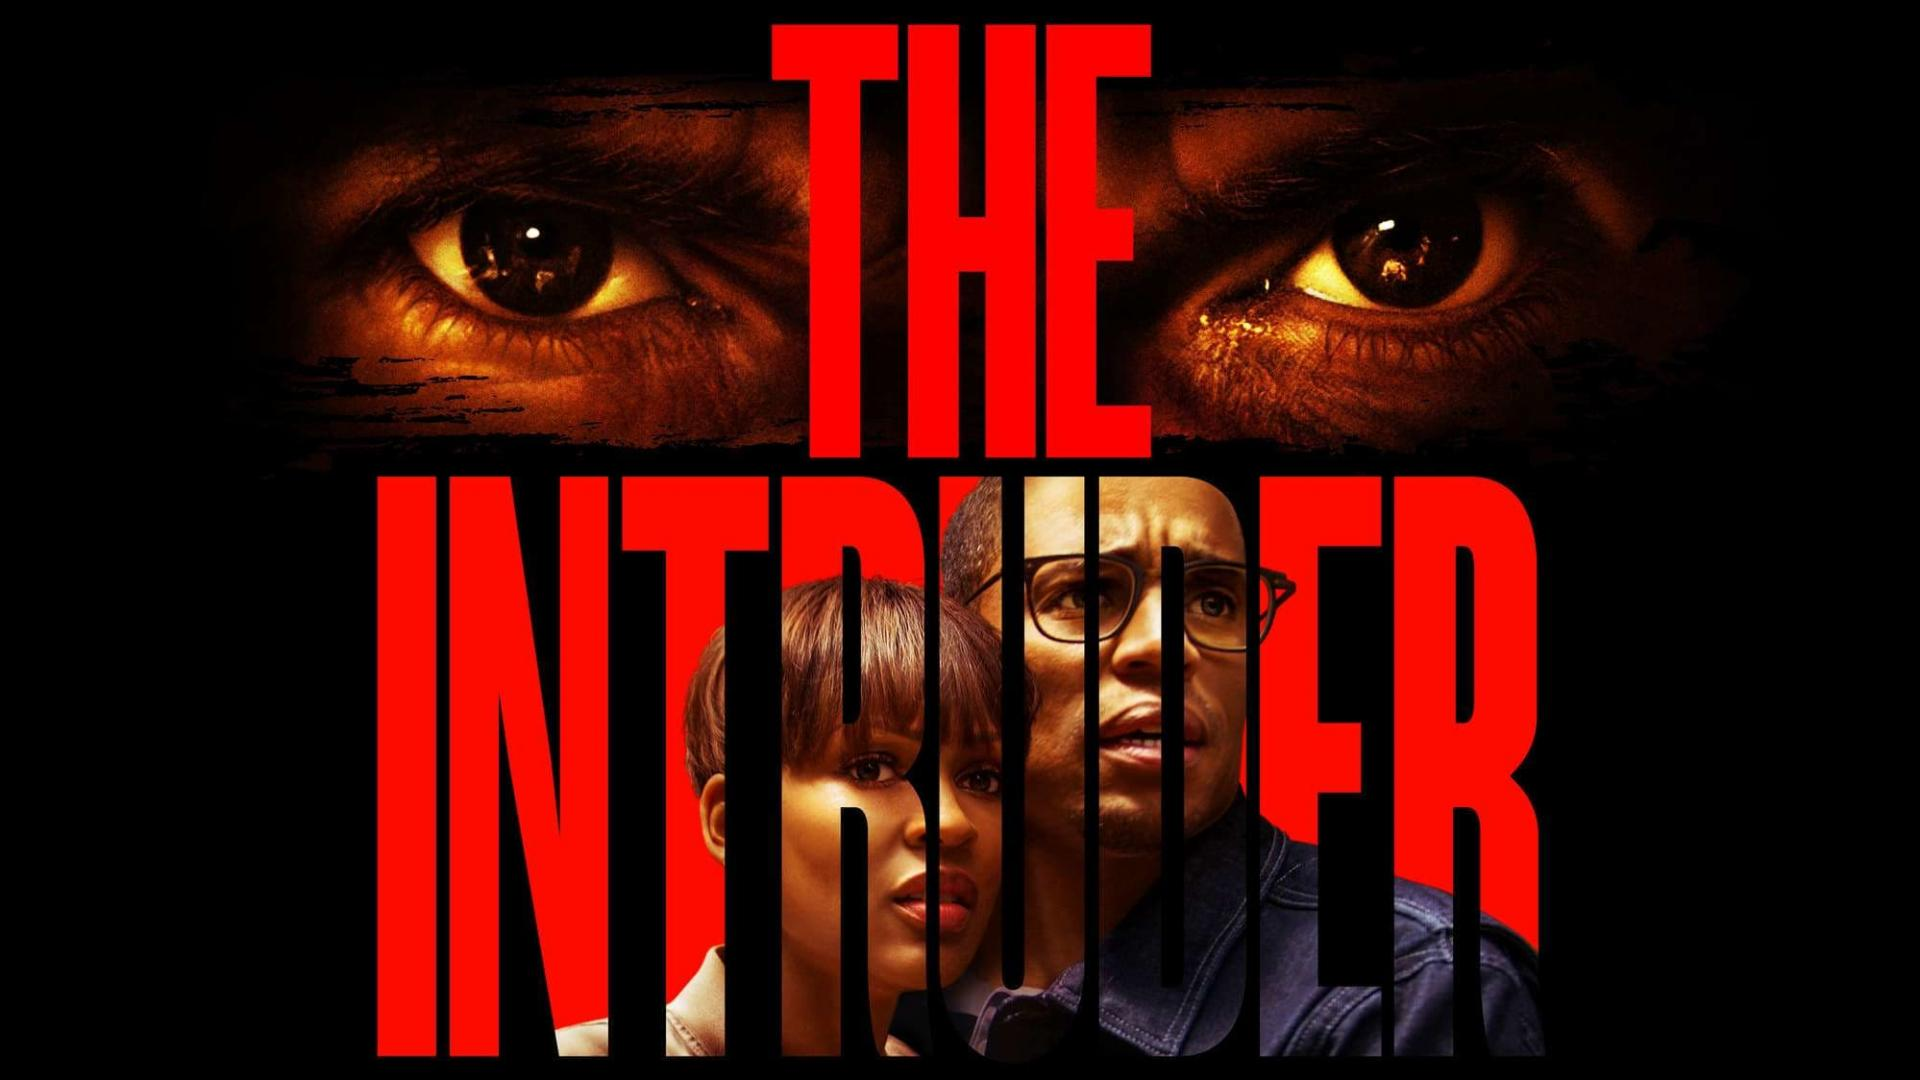 The Intruder 2019 FilmFed   Movies Ratings Reviews and Trailers 1920x1080